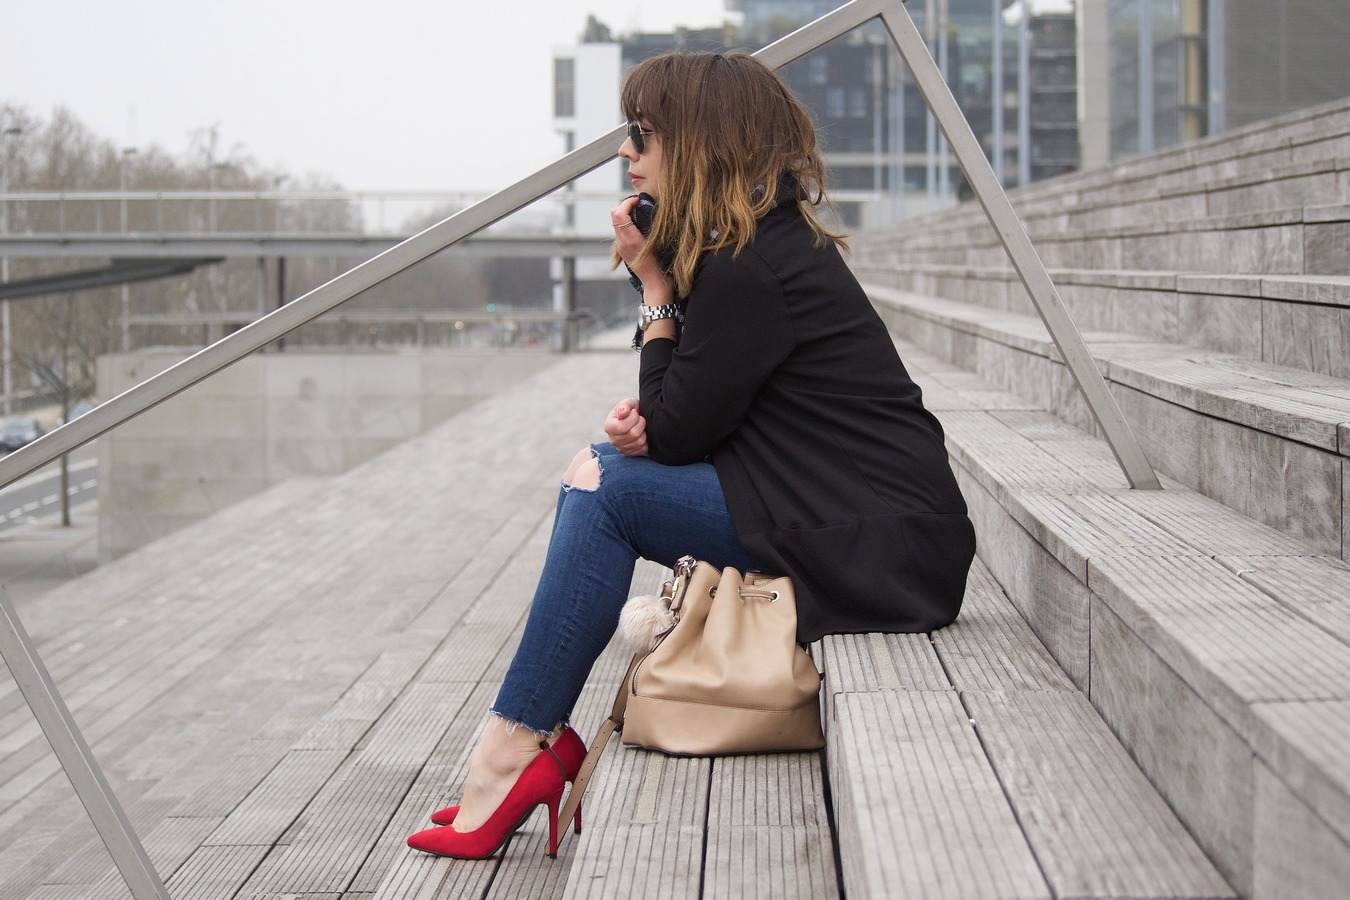 Blog mode femme Paris - Du style, Madame - Streetstyle